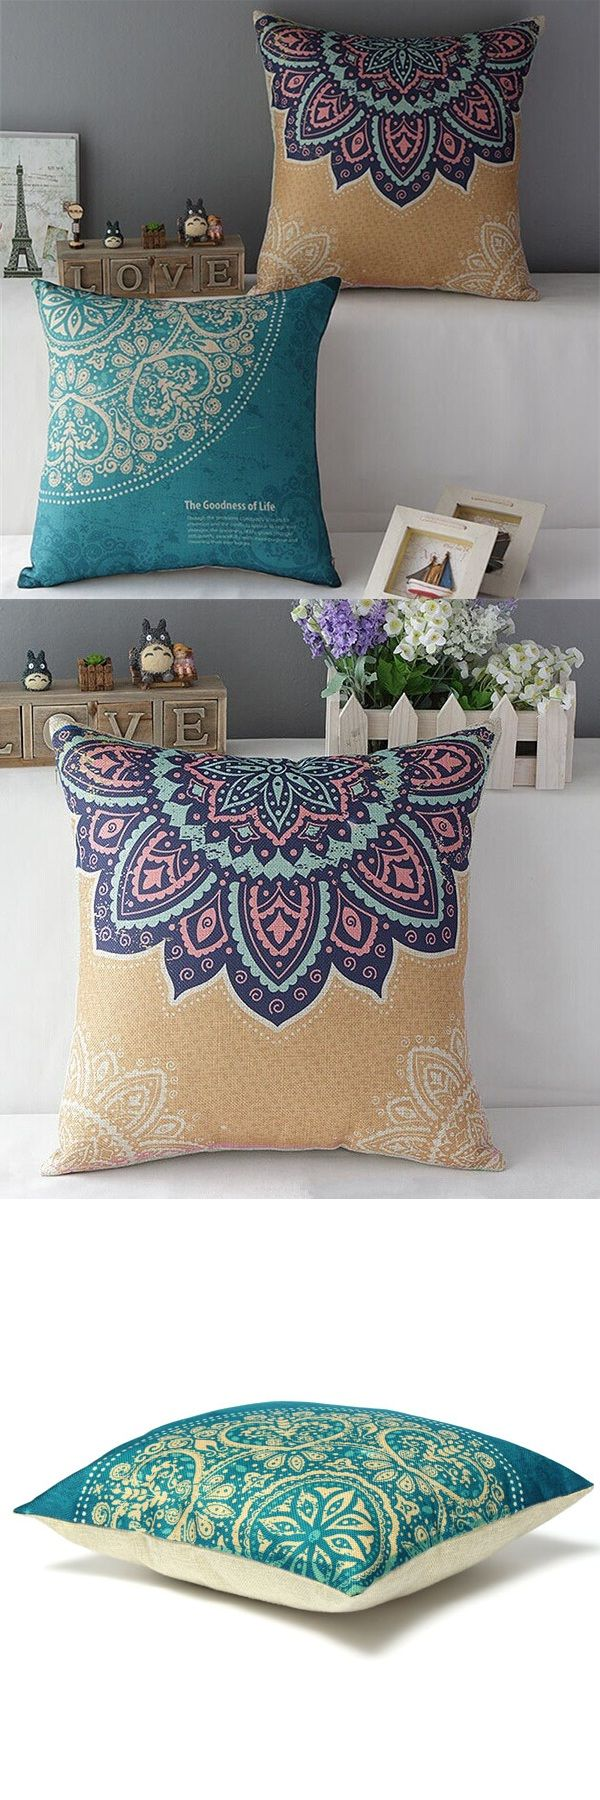 Decorative Pillow Set 17 Best Ideas About Rustic Decorative Pillows On Pinterest